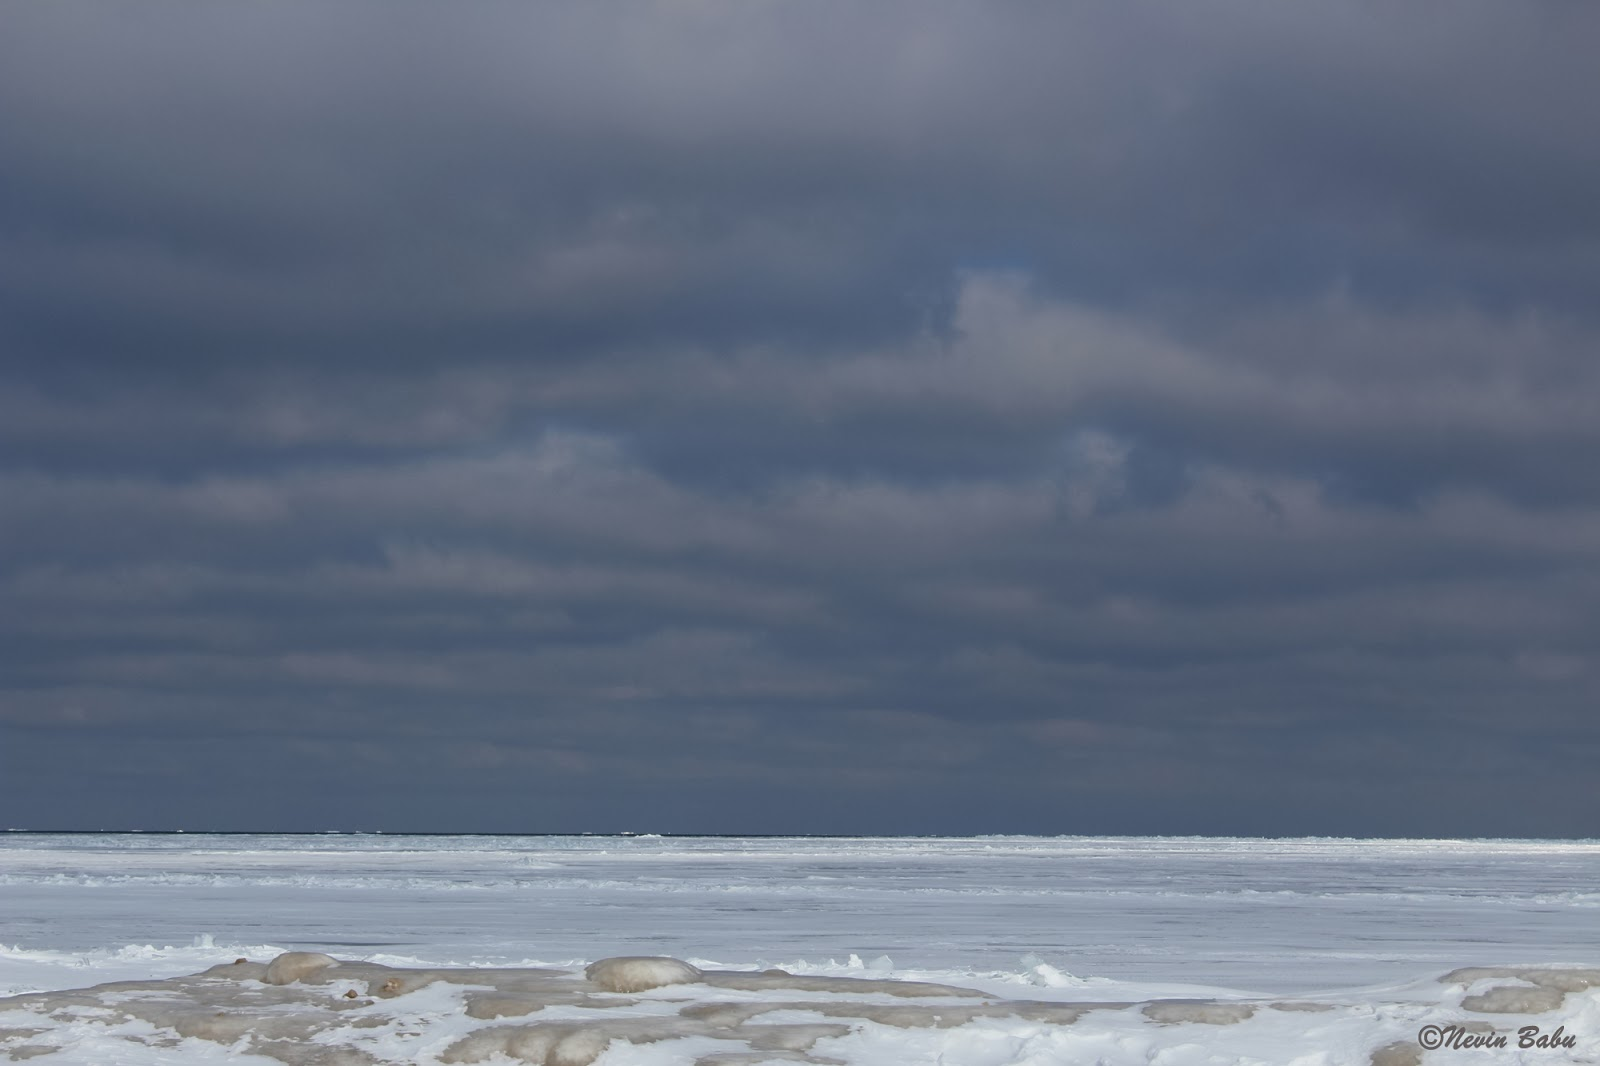 Frozen Light House Beach at Evanston